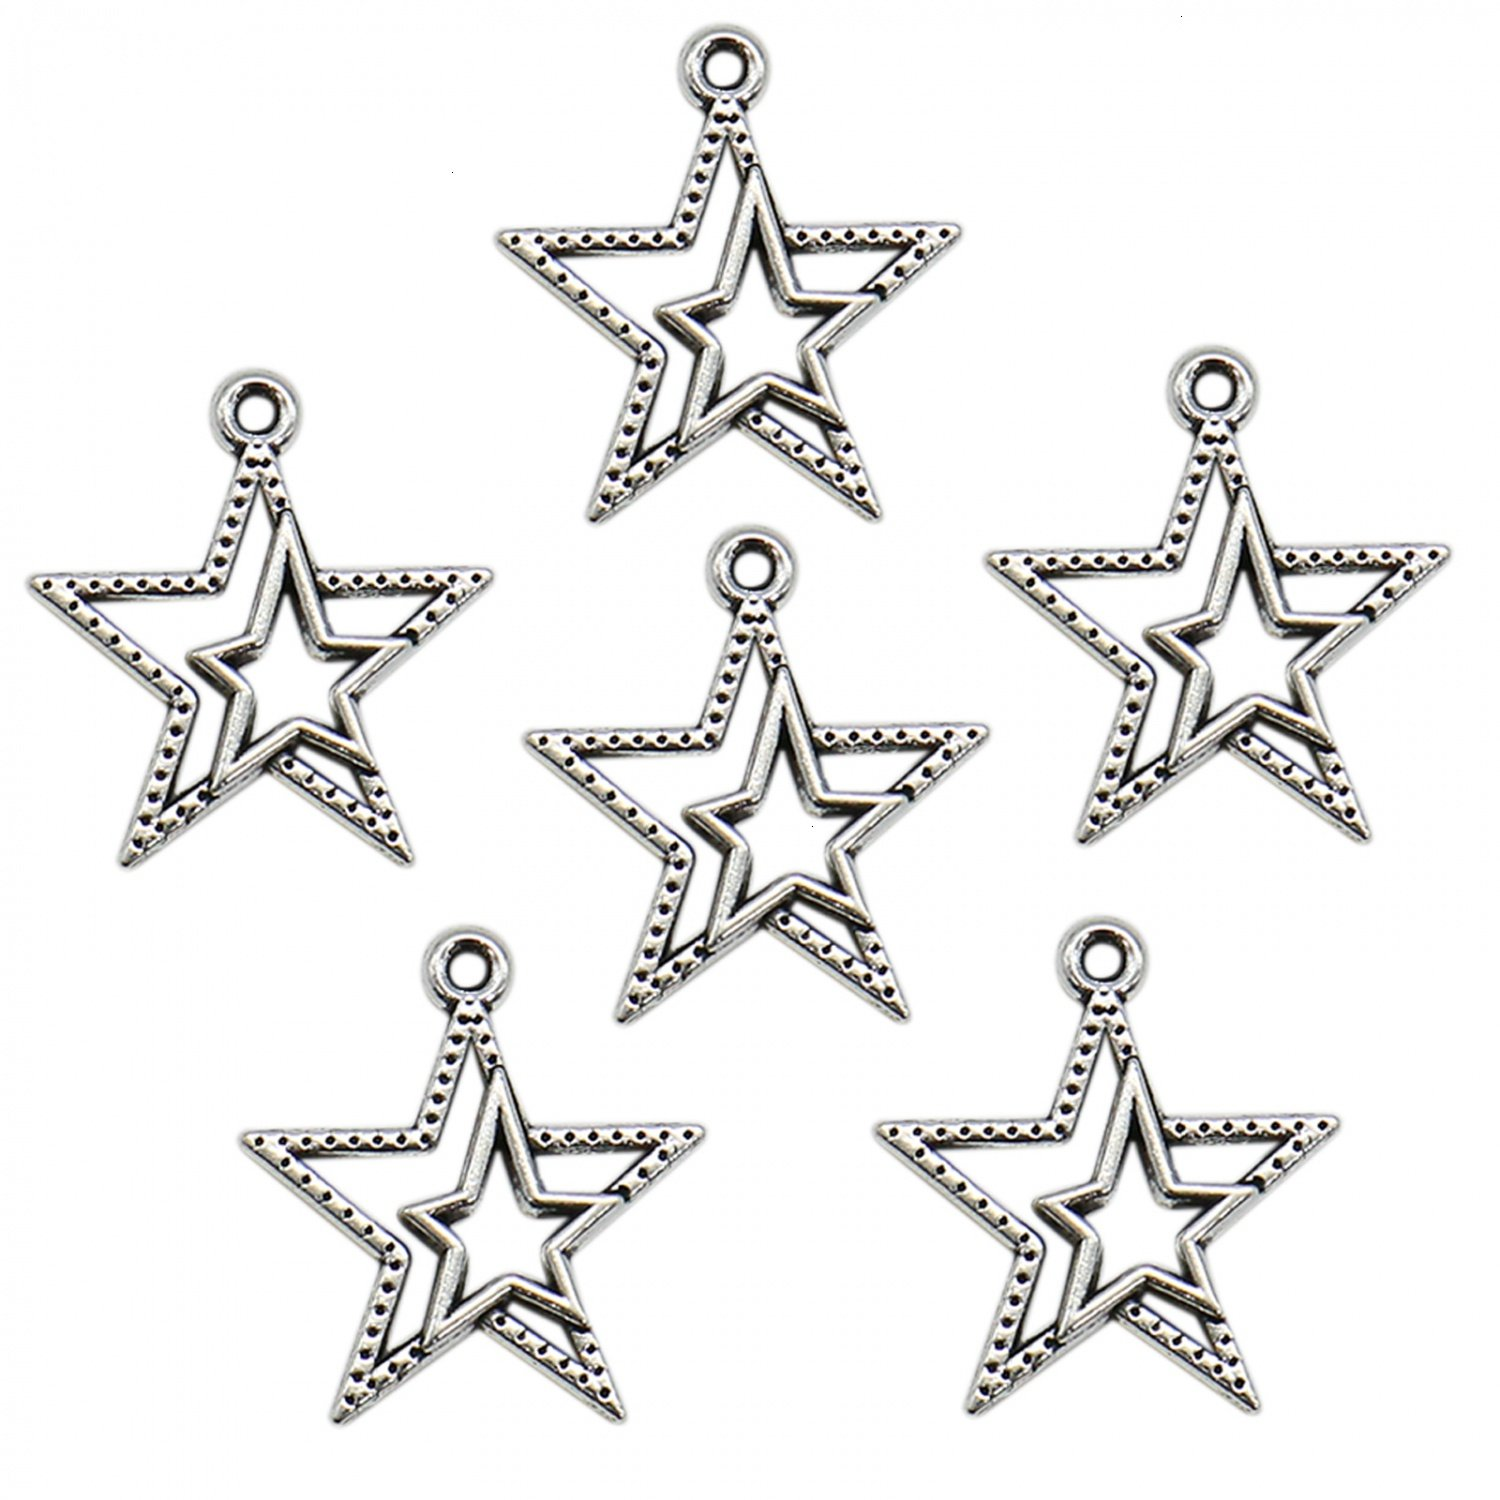 Buorsa 50 pcs Vintage Double Star Sign Metal Charms Metal Beads Silver Color for Jewelry Making DIY Bracelet 4336807016